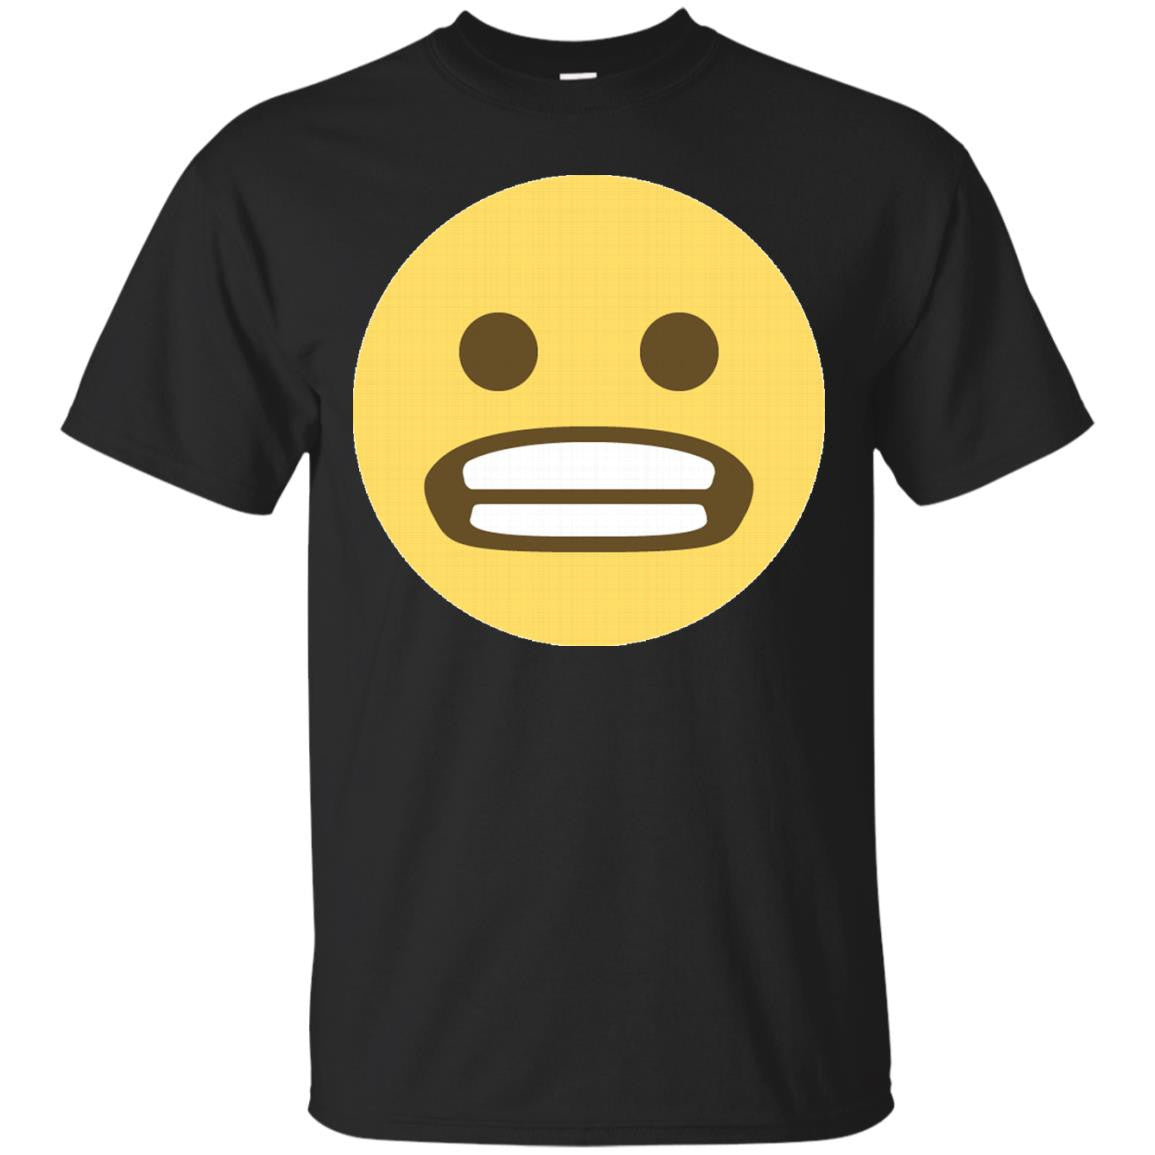 Smiling with Teeth Clenched Emoji Face T-Shirt